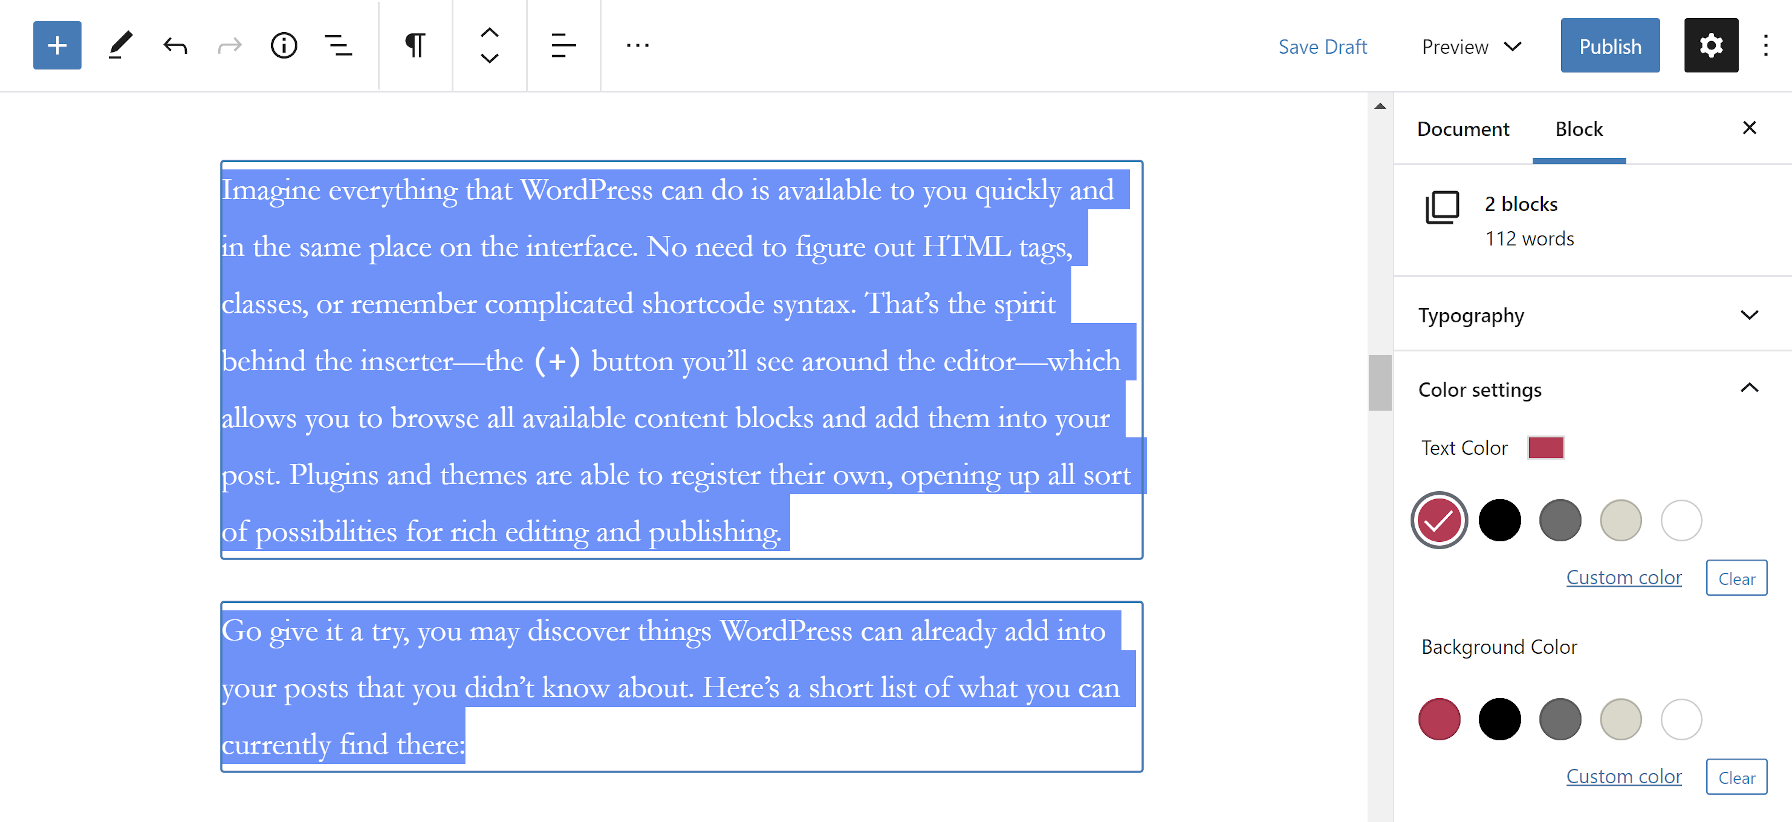 Editing the block options for two paragraphs.